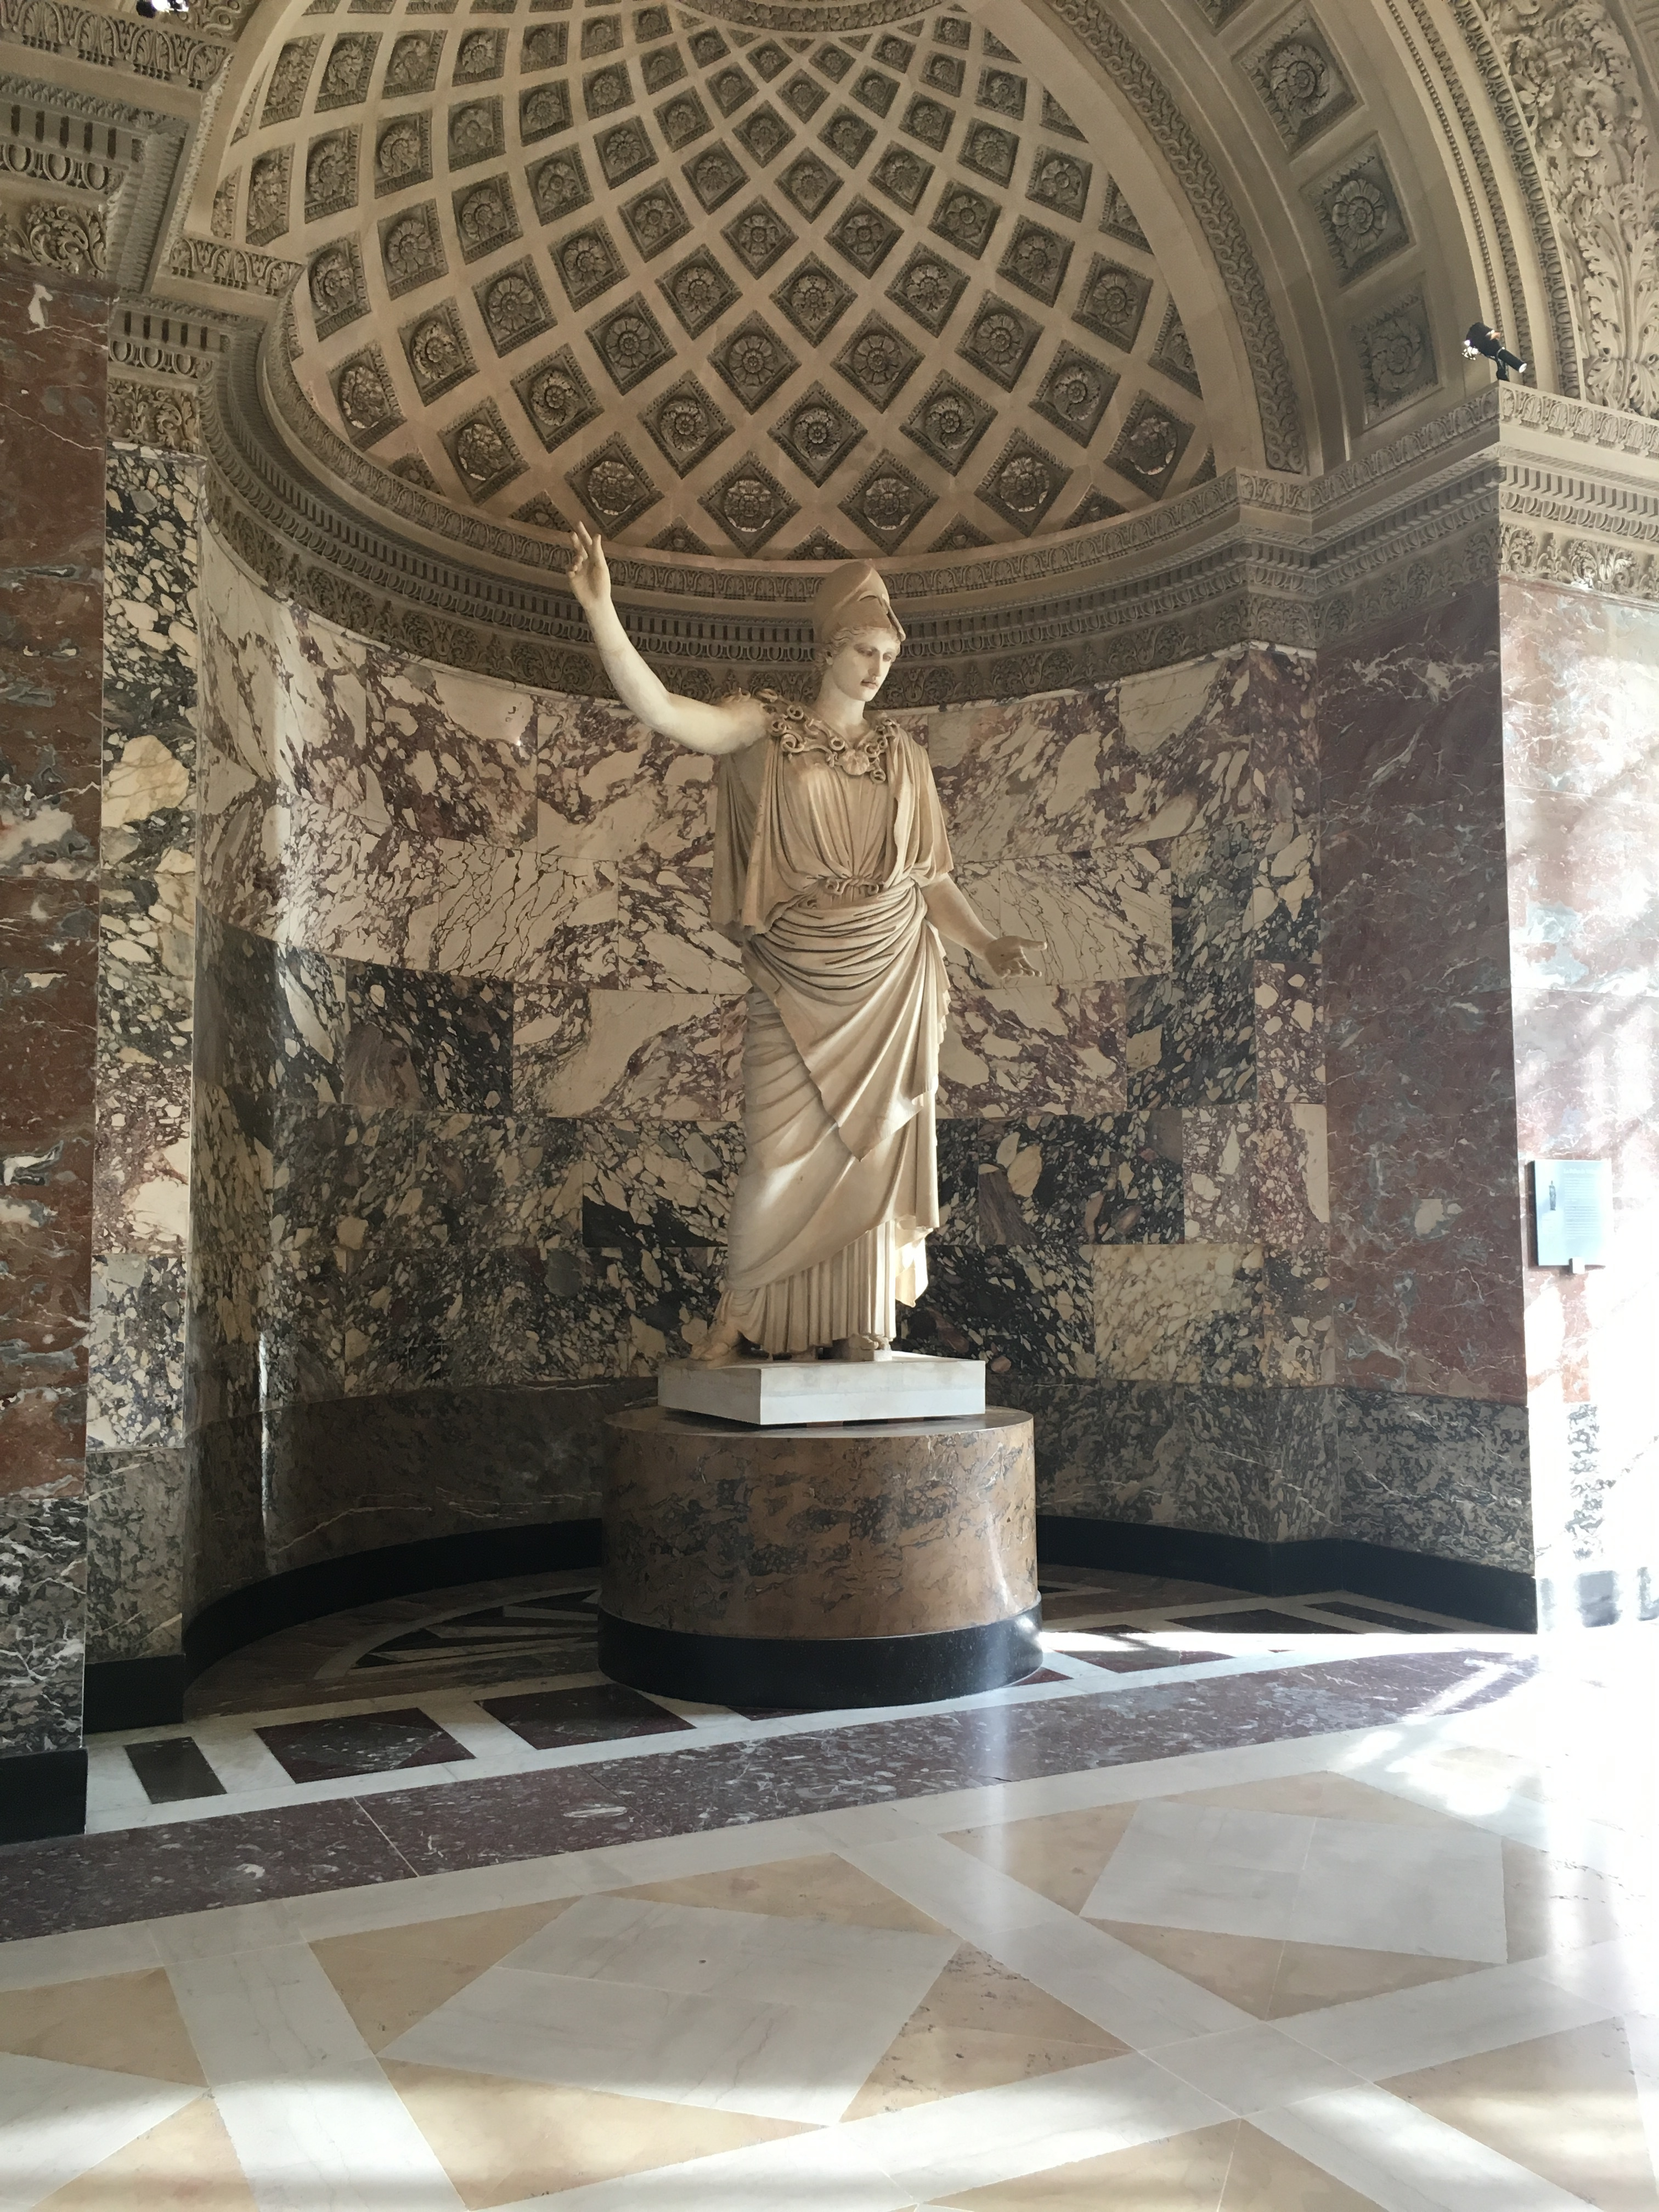 When Statues Walk Among Us: The Louvre, Pt. 2